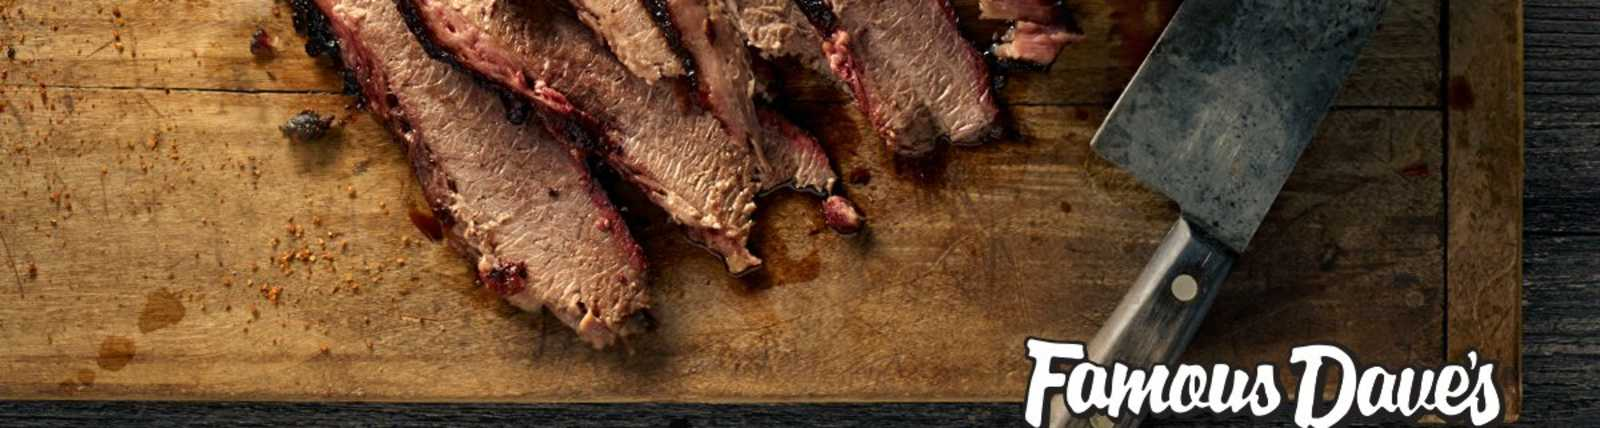 Famous Dave's Beef Brisket